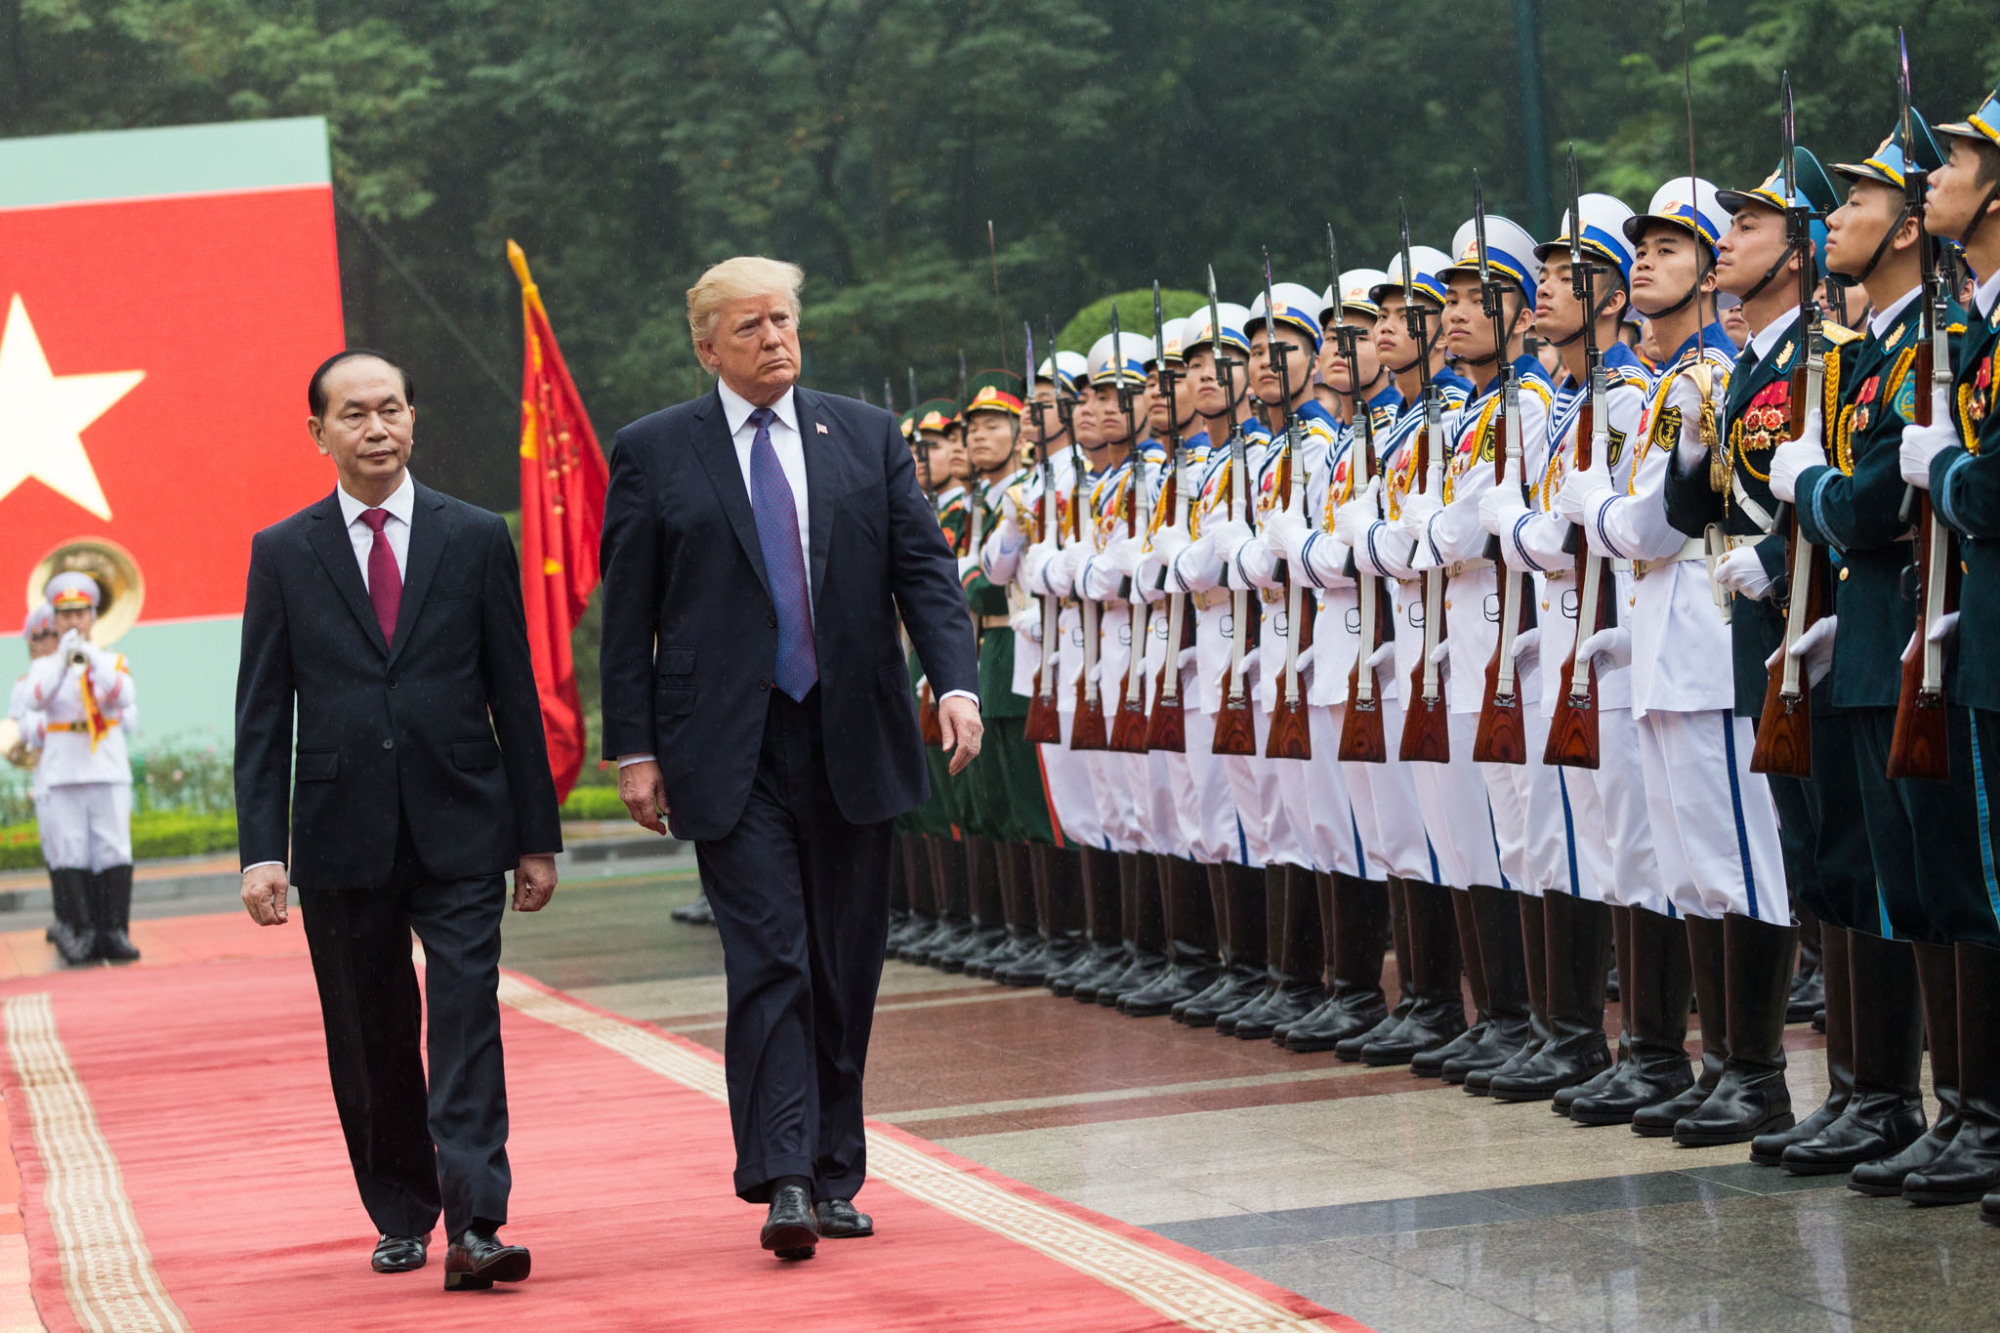 Vietnamese State President Tran Dai Quang and U.S. President Donald Trump review an honor guard in Hanoi on Nov. 12. | THE WHITE HOUSE